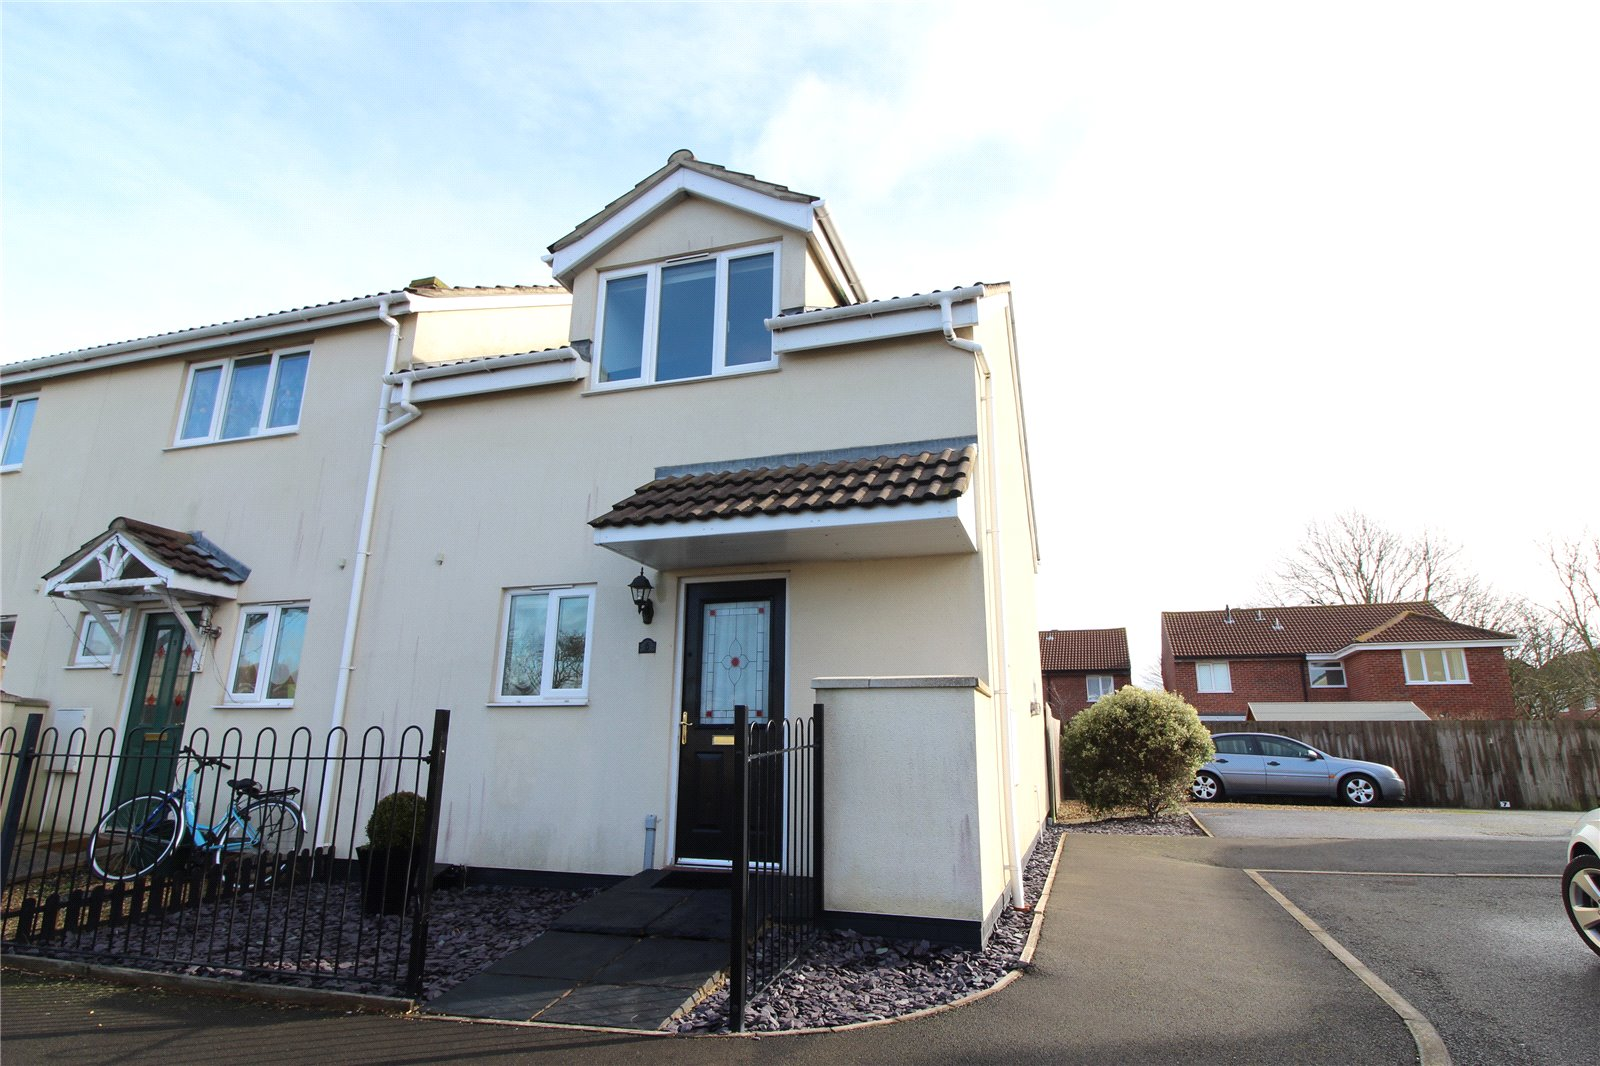 Cj Hole Burnham On Sea 3 Bedroom House For Sale In Raleigh Gardens Burnham On Sea Somerset Ta8